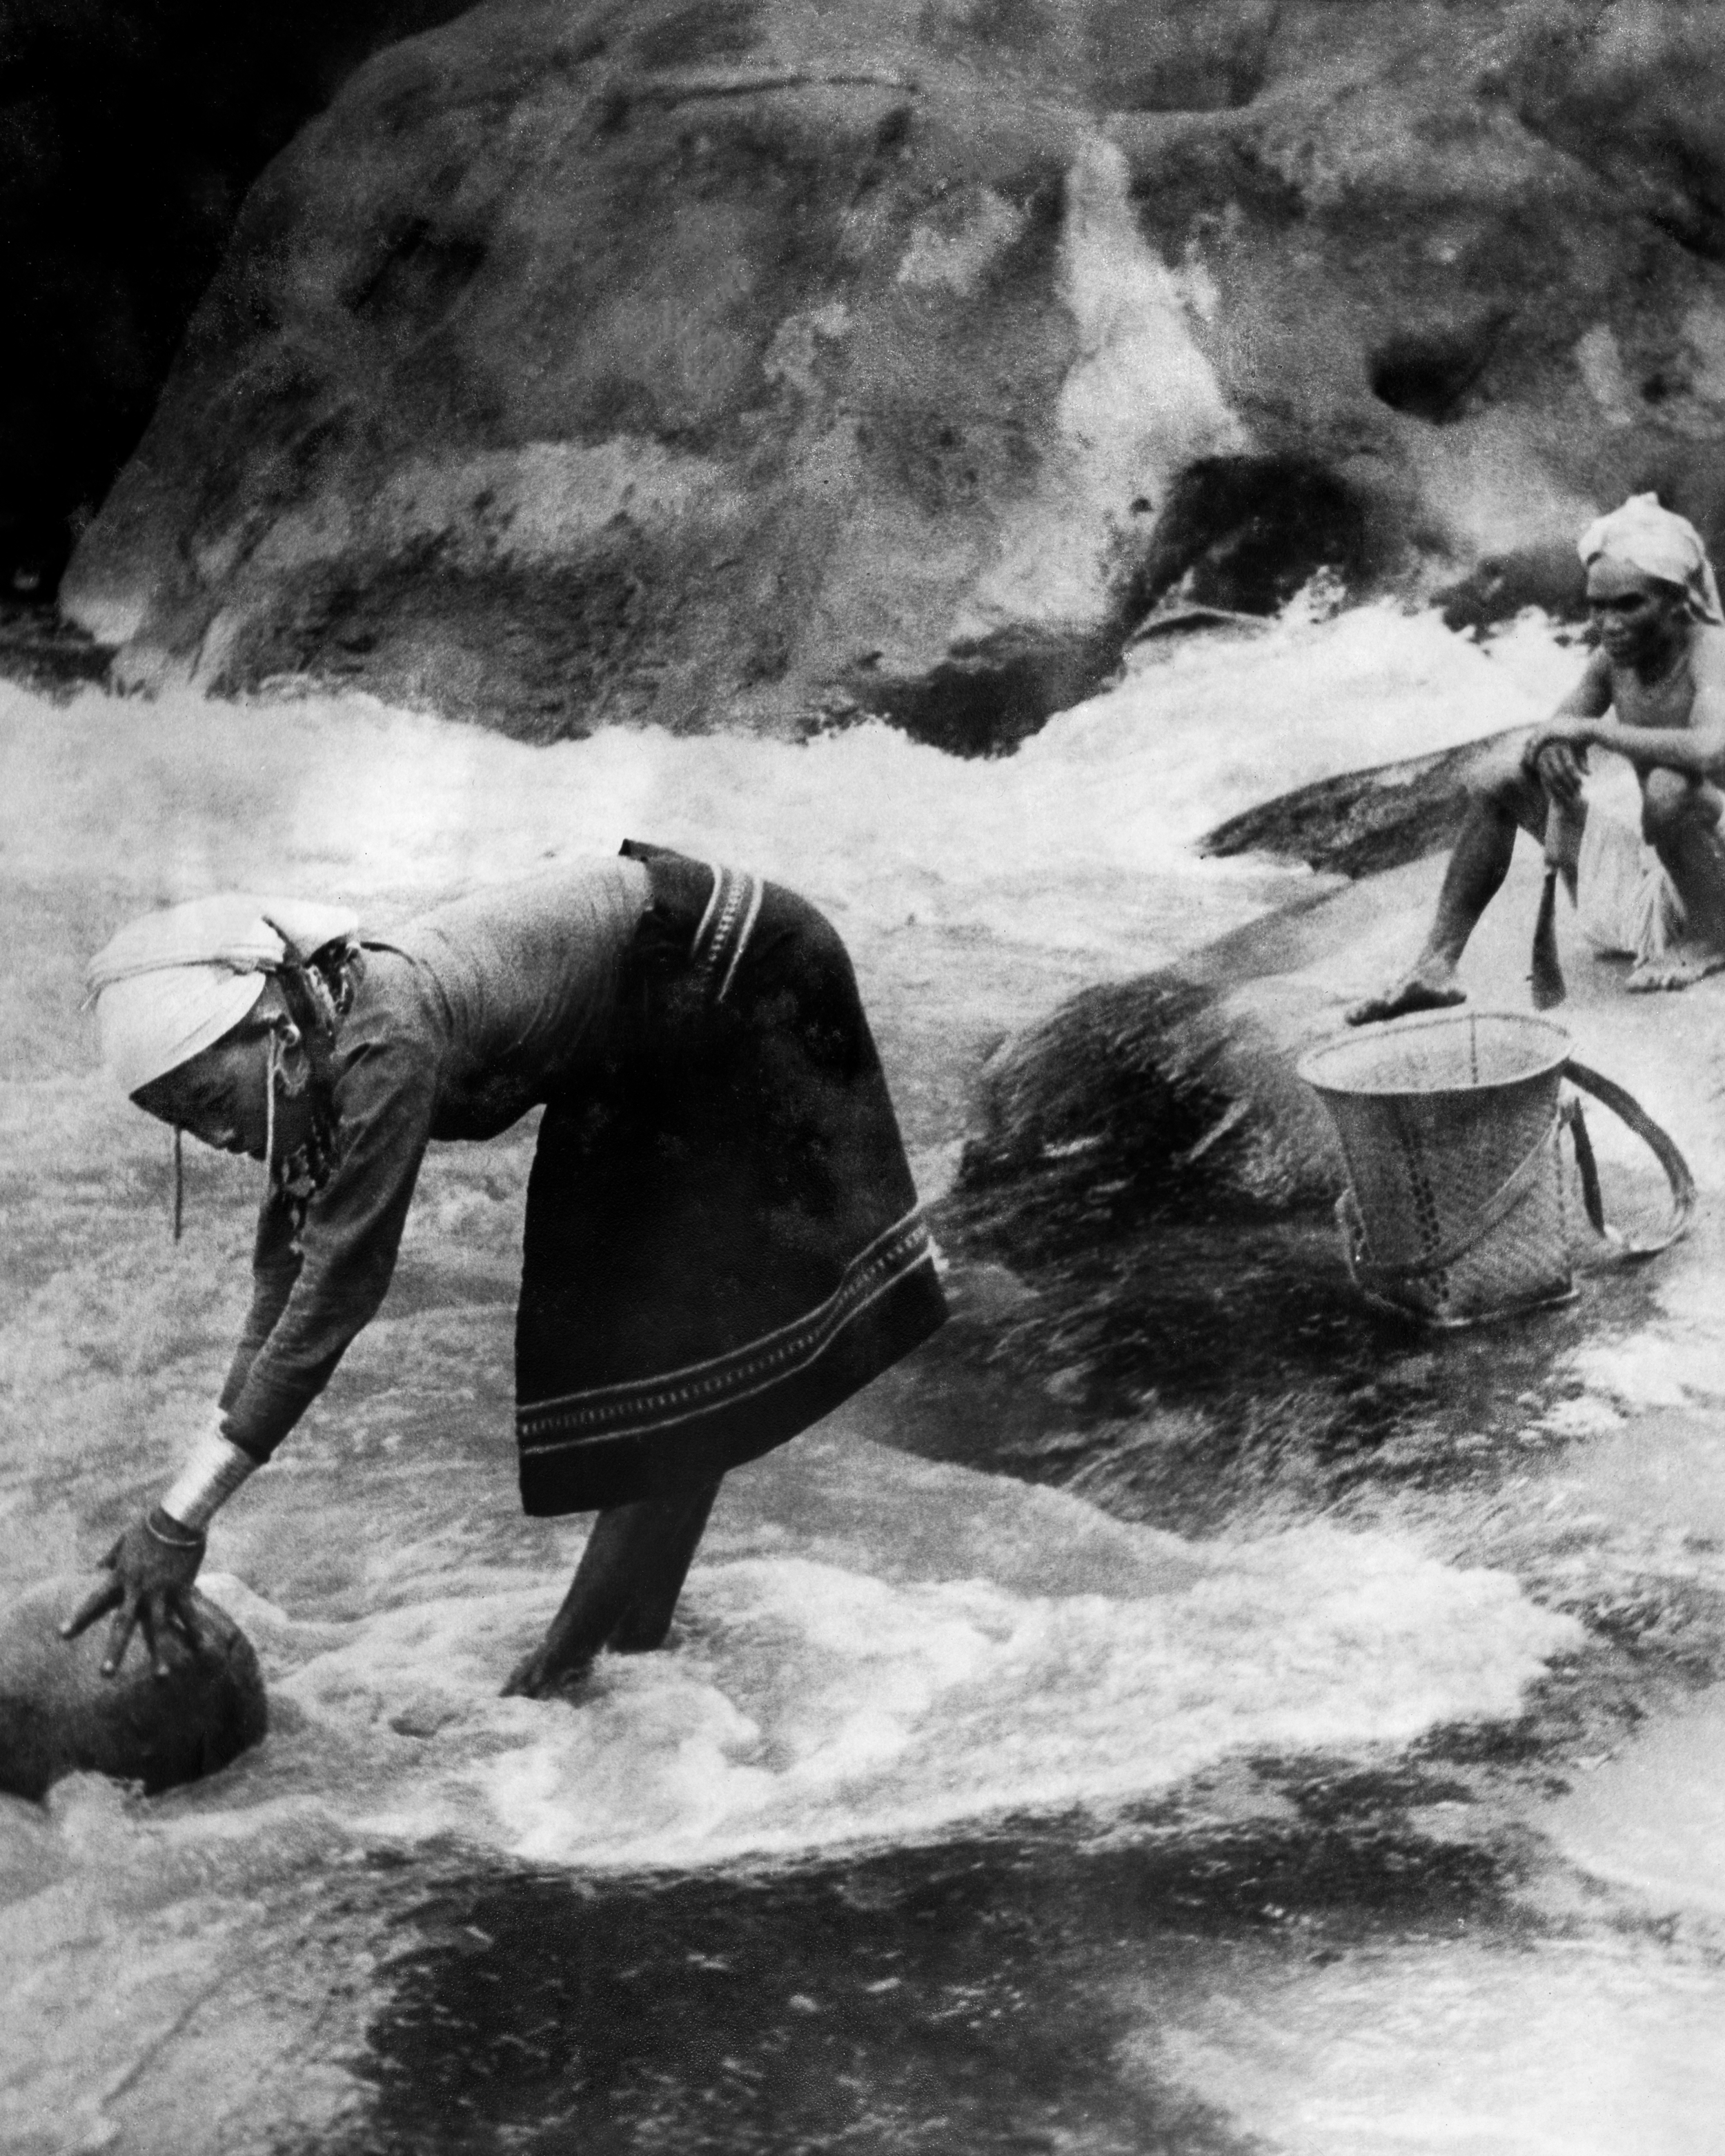 Reang couple fetching water from a nearby river. The woman is wearing a plain  rignai  with patterned borders and traditional jewellery.  c.1974